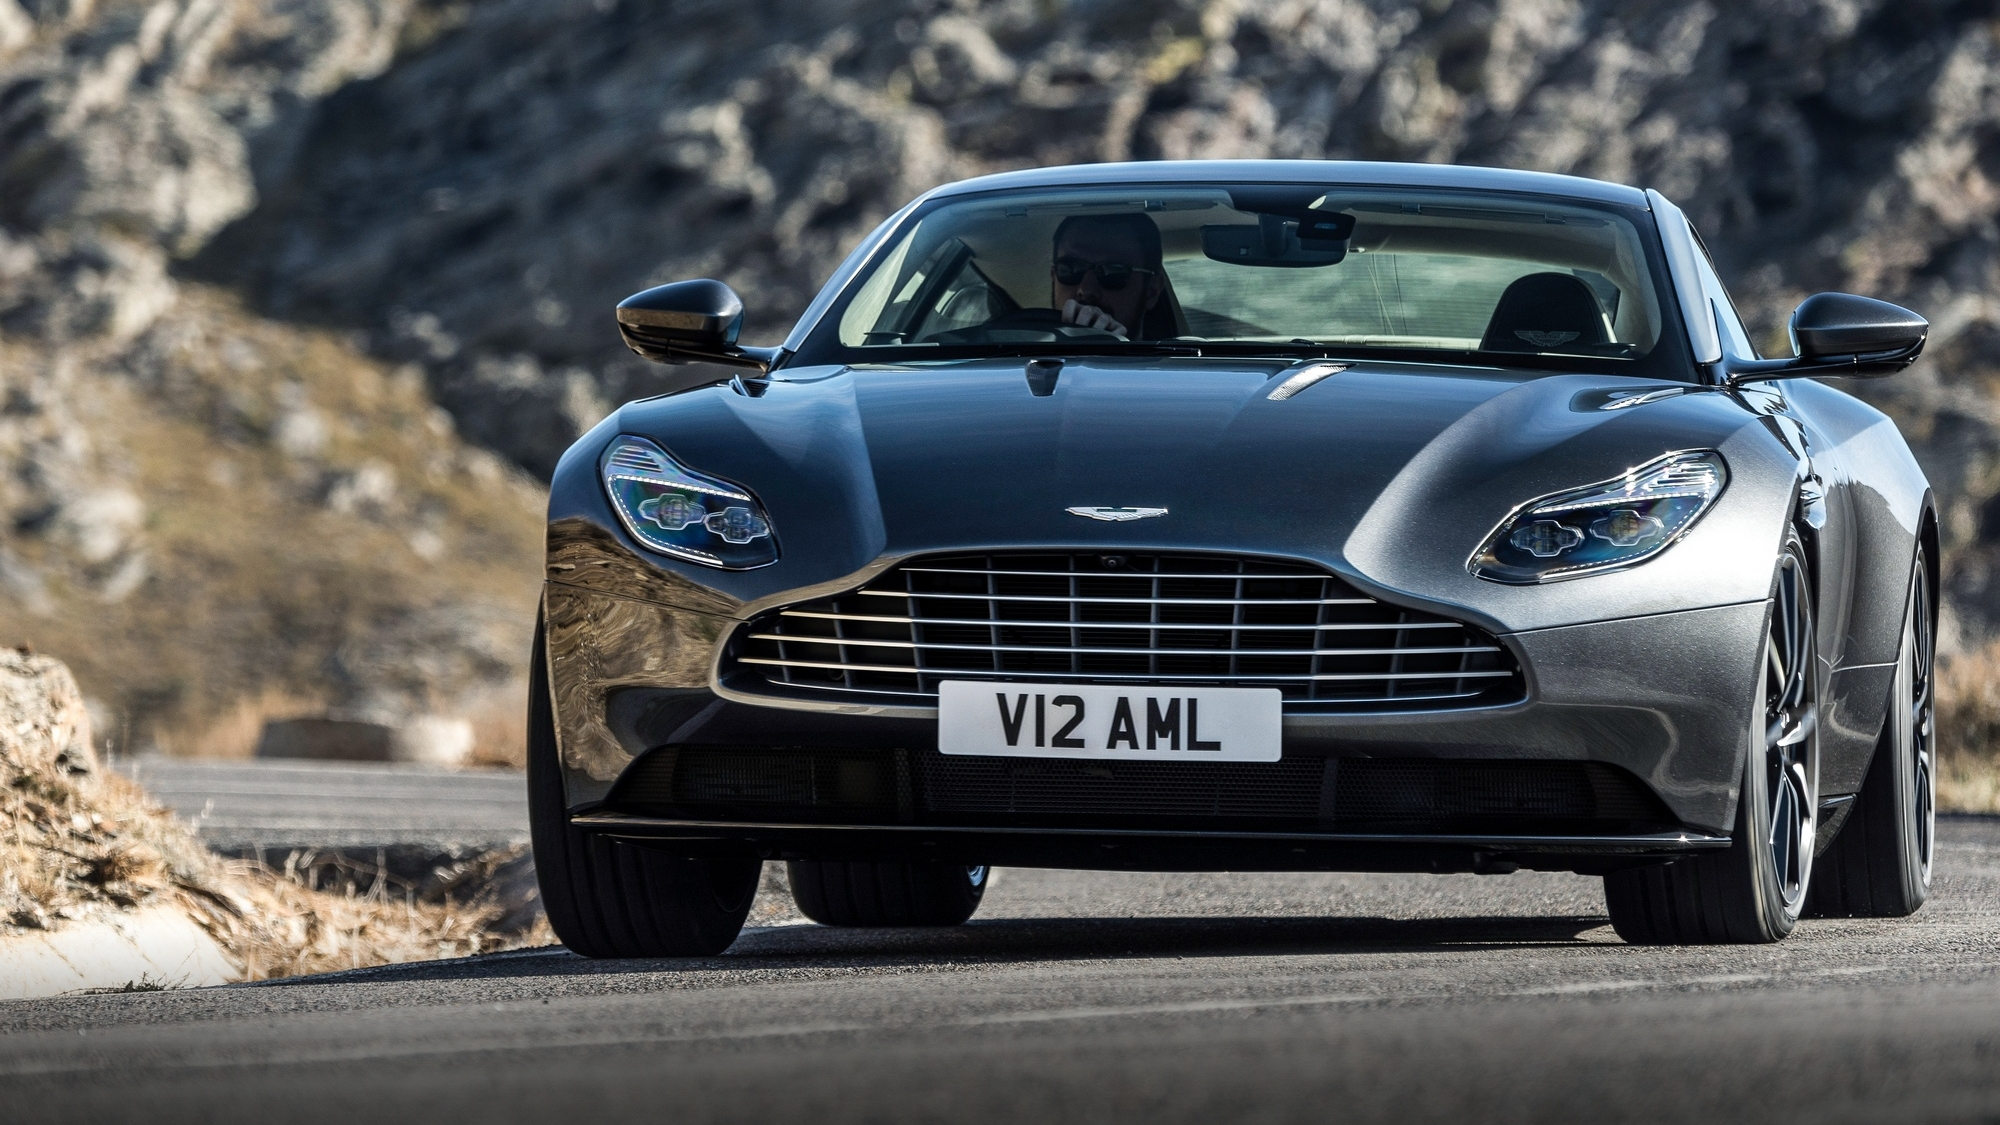 Aston Martin Db11 Reviewed By Business Insider Australia Solitaire